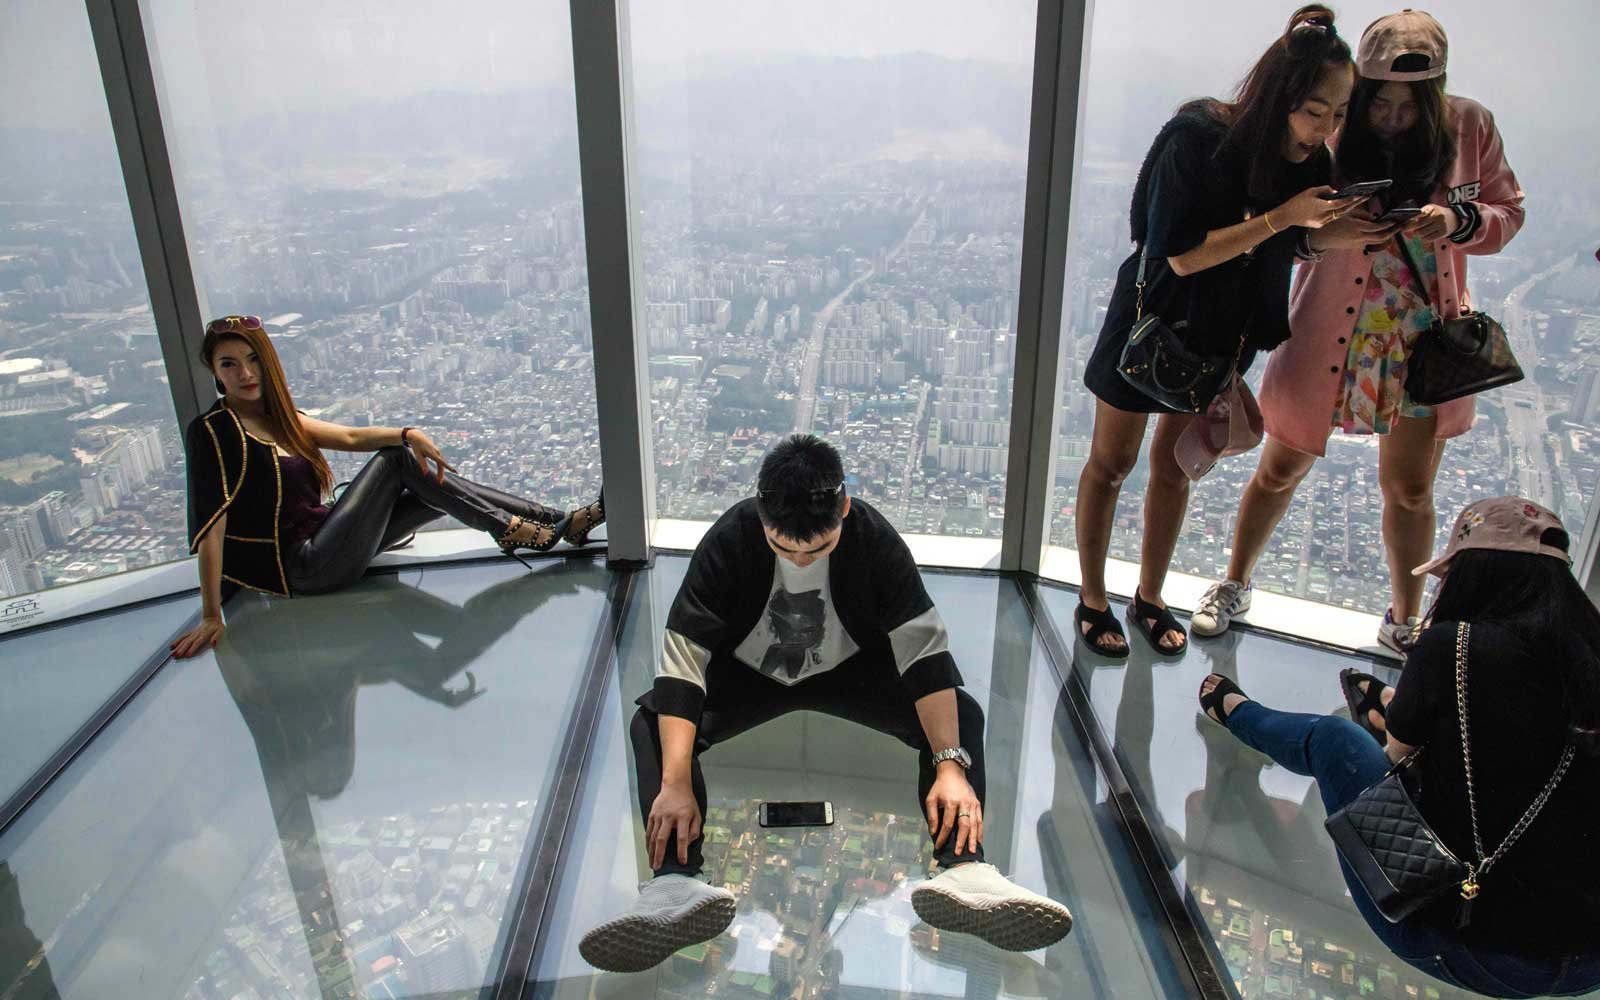 Visitors pose for photos as a viewing deck of the Lotte World Tower in Seoul on June 6, 2018